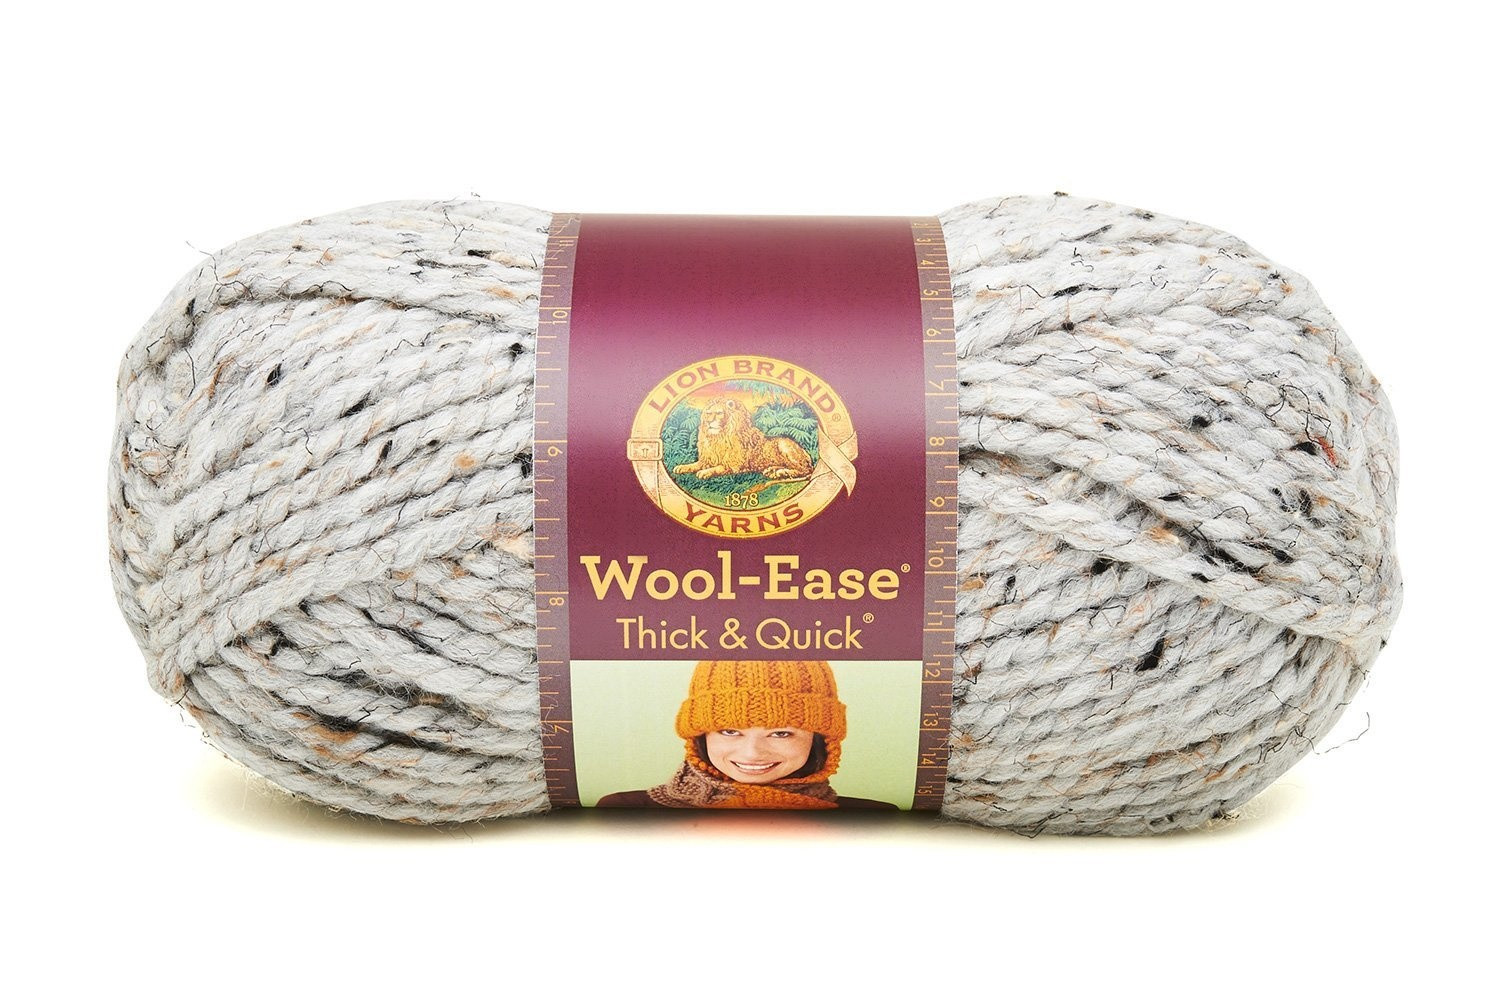 Wool Ease Thick and Quick Elegant Lion Brand Yarn 640 136f Wool Ease Thick and Quick Yarn Of Adorable 45 Photos Wool Ease Thick and Quick